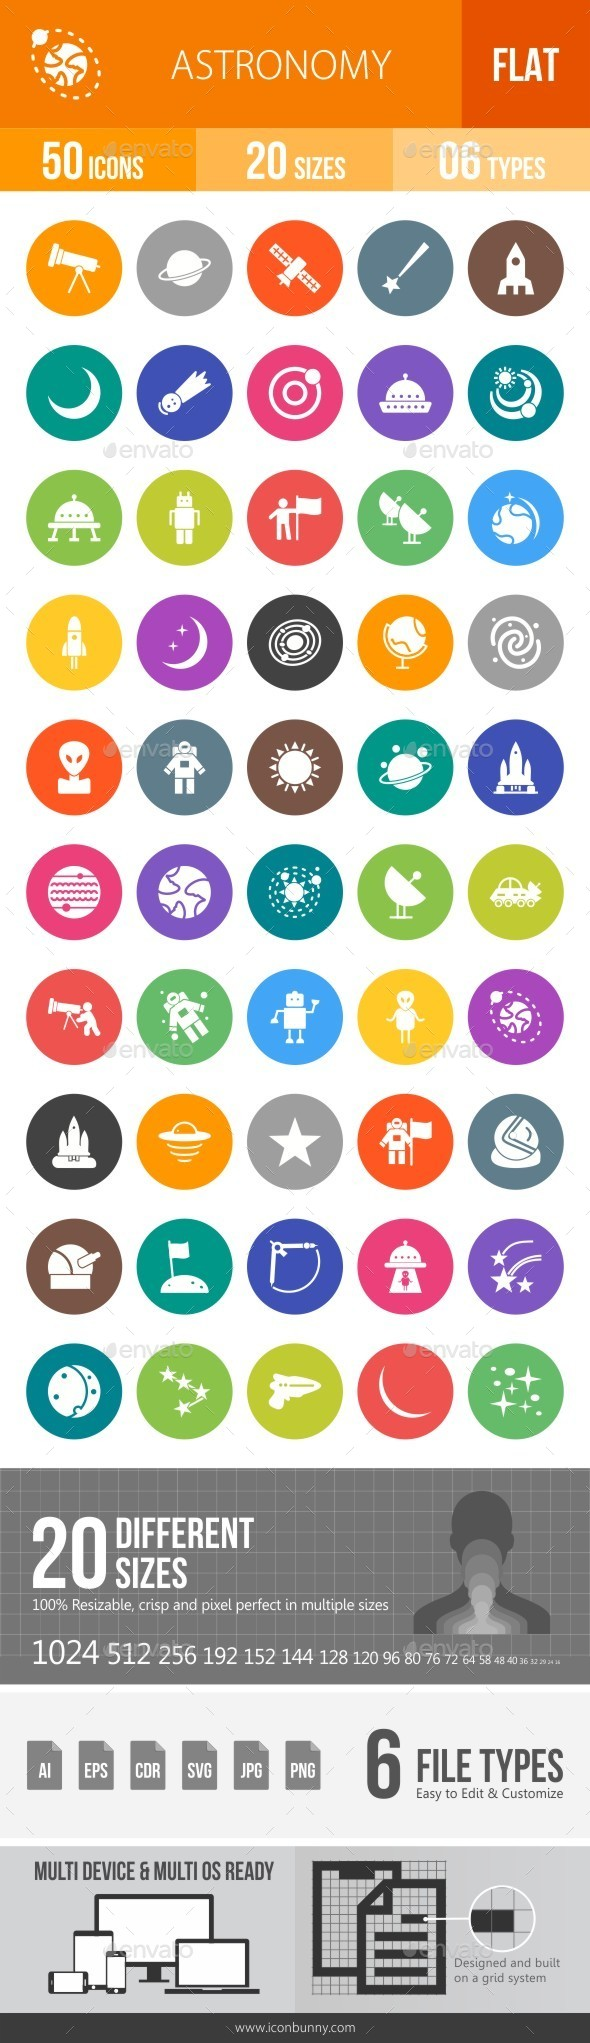 Astronomy Flat Round Icons - Icons